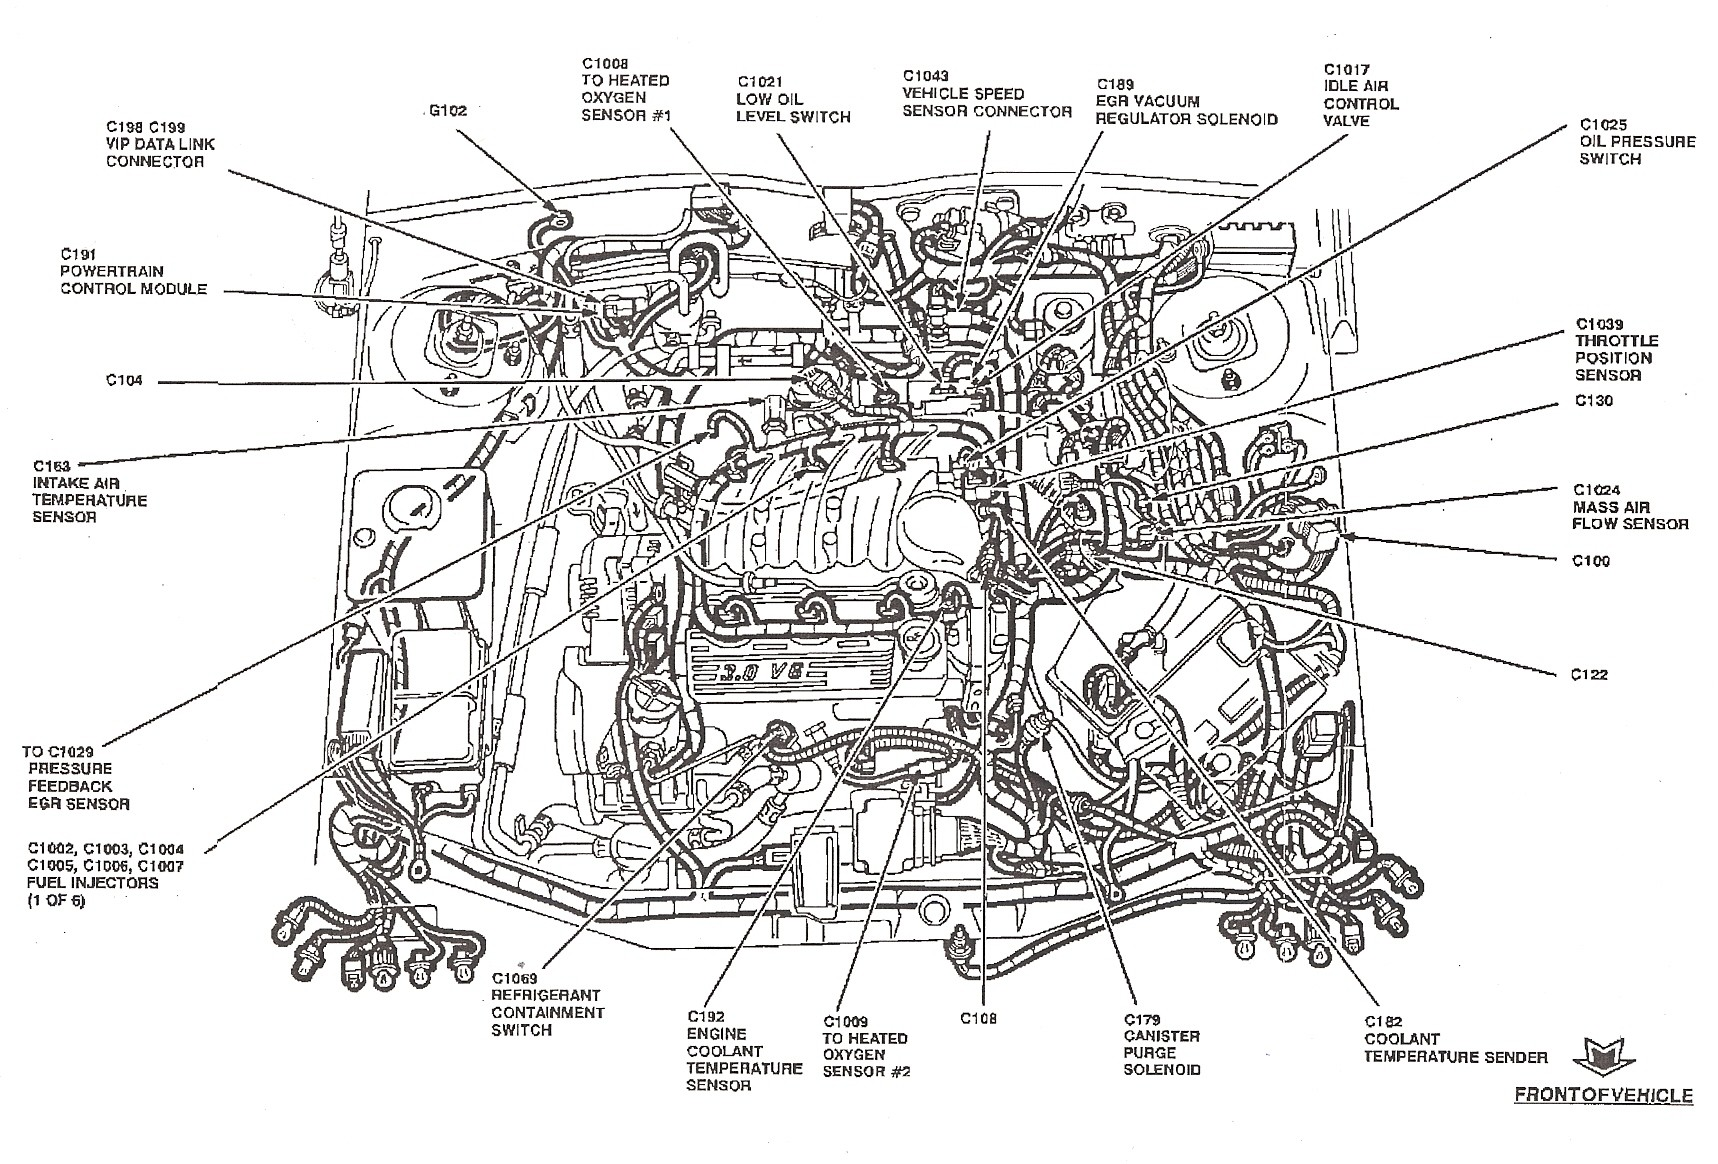 hight resolution of 2001 f250 engine diagram wiring diagram paper 2001 ford windstar engine diagram 2001 ford engine diagram